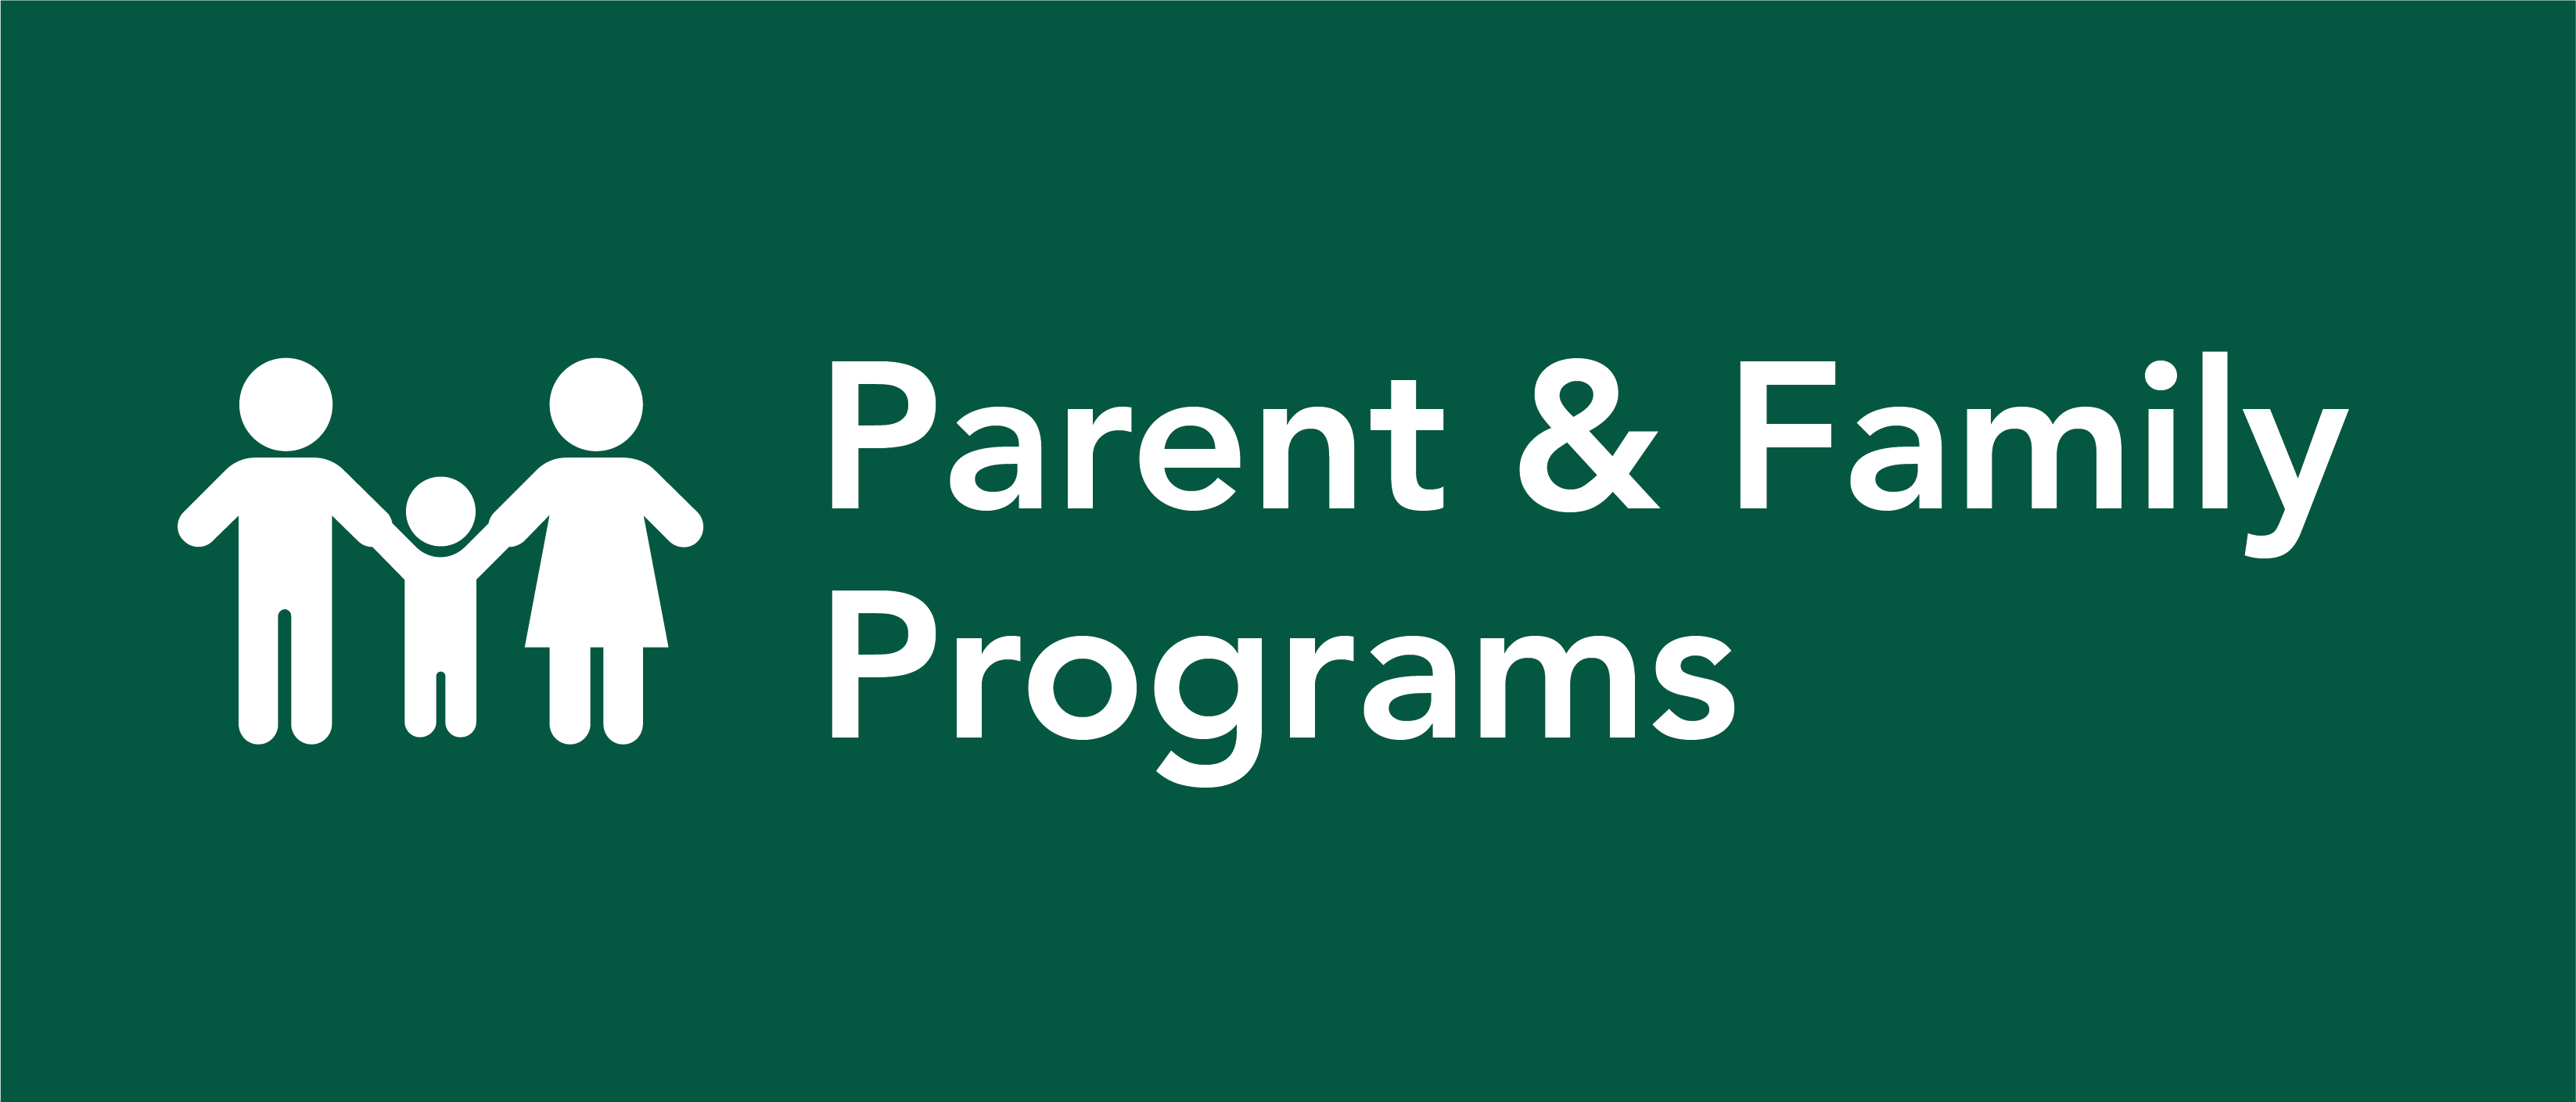 Parent & Family Programs